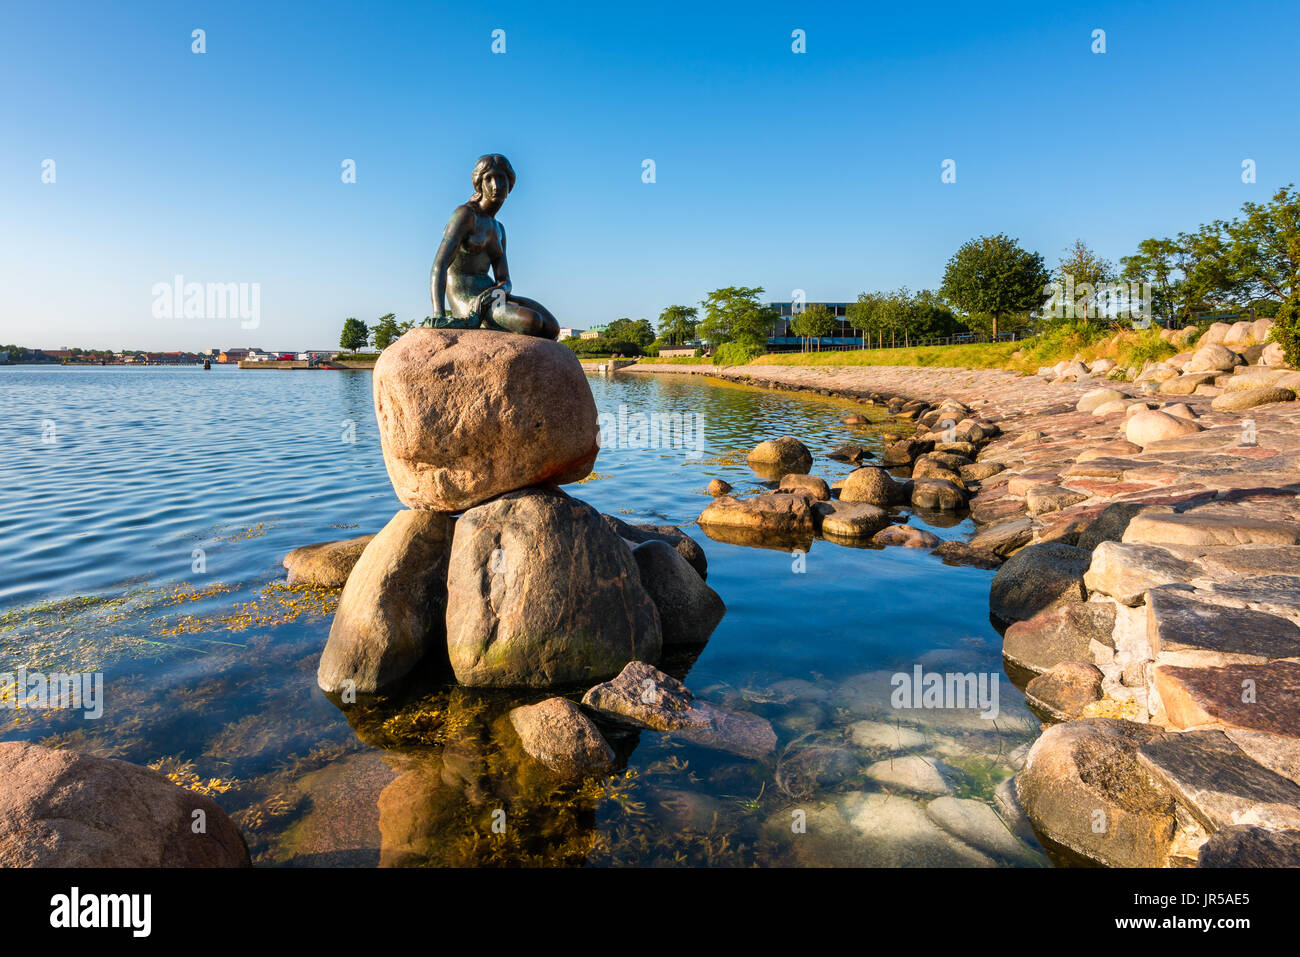 The famous Little Mermaid statue in the harbor of  Copenhagen Denmark - Stock Image